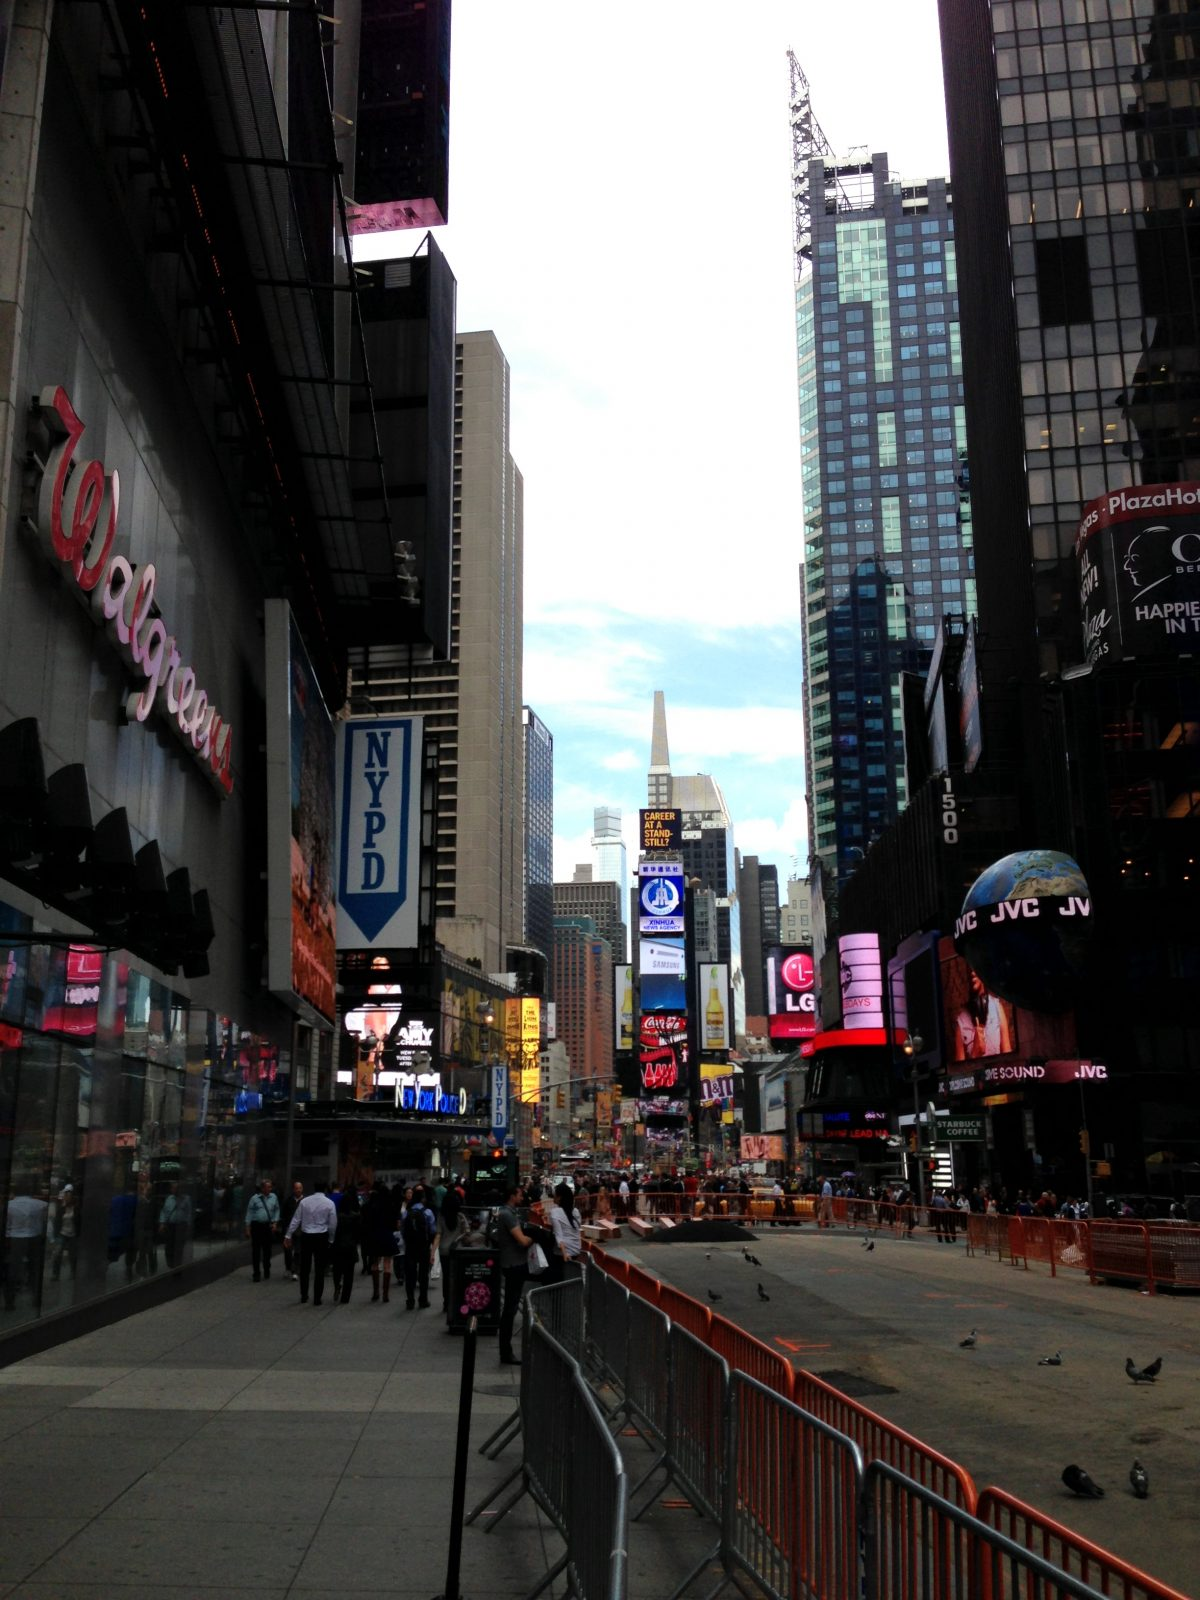 NYC Tag 1 – 42nd Street – Times Square Tag